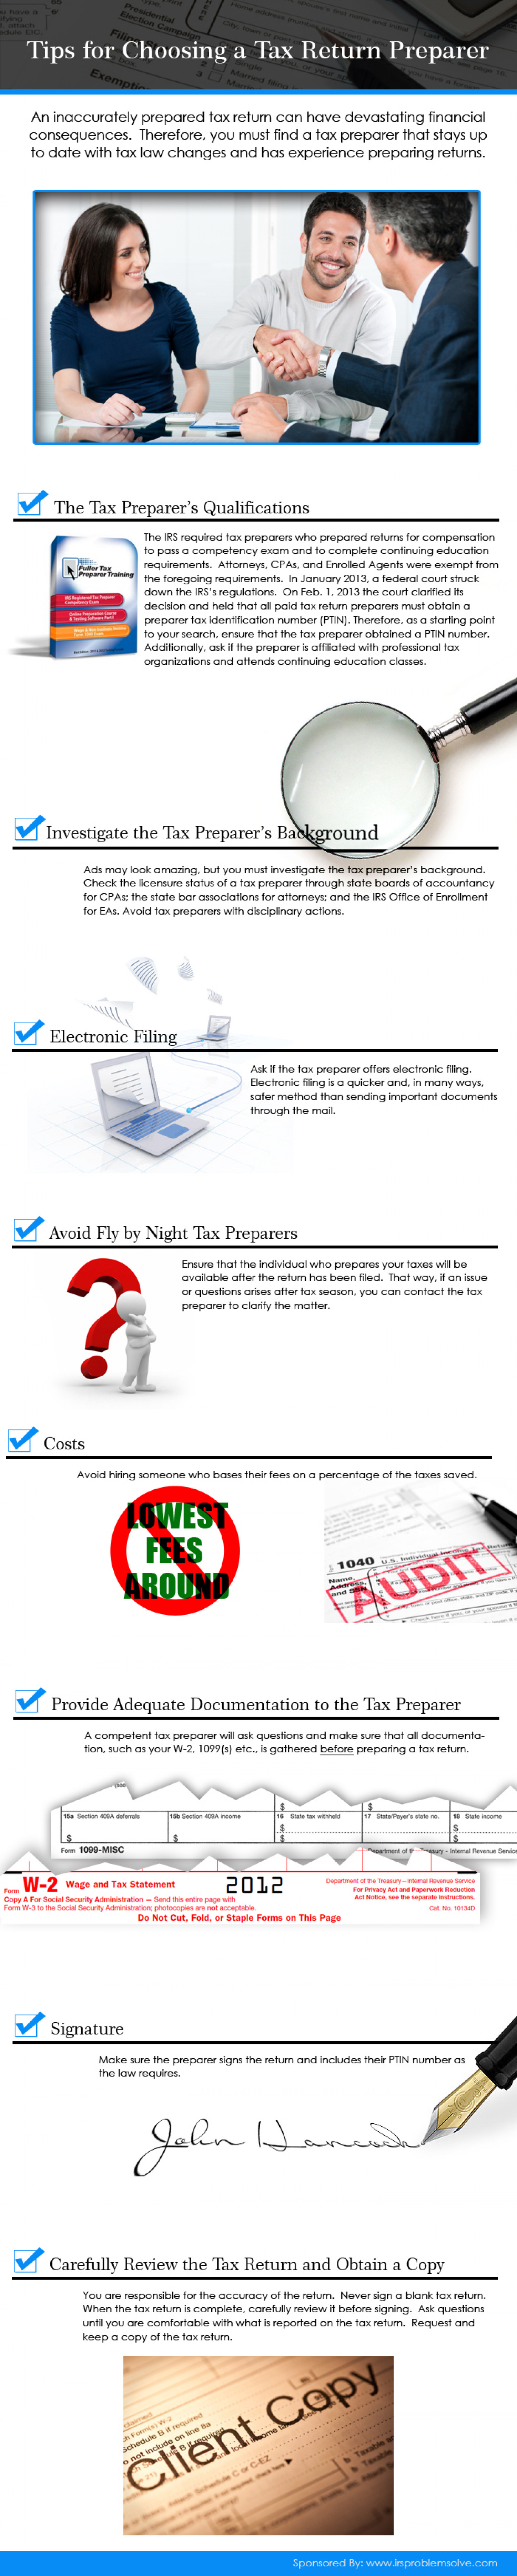 Tips for Choosing a Tax Return Preparer Infographic